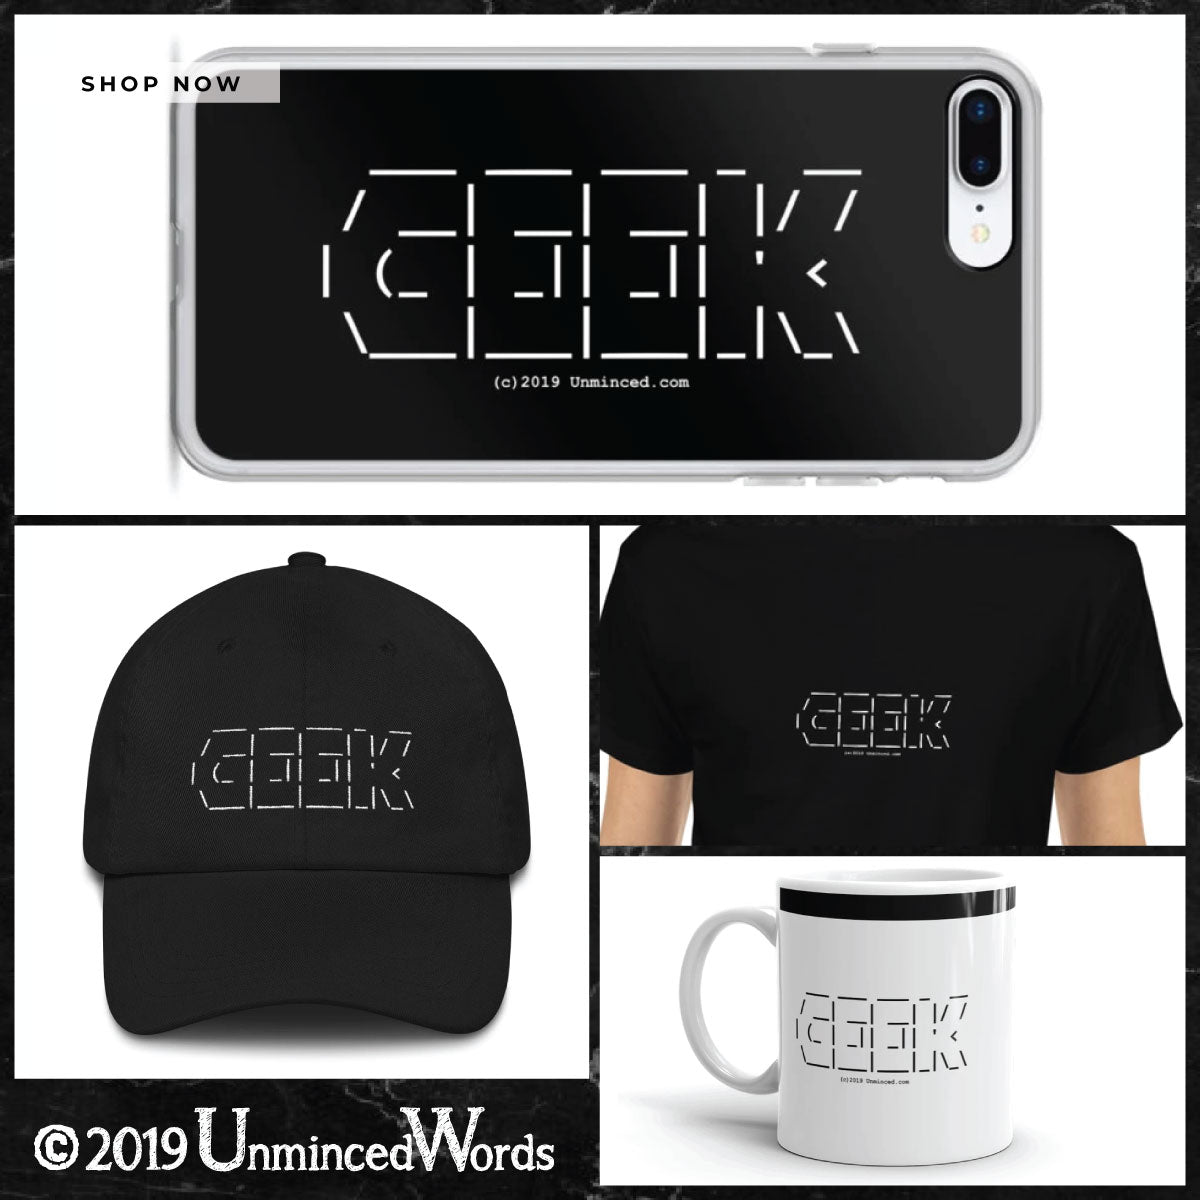 A GEEK design + the right person = a great gift